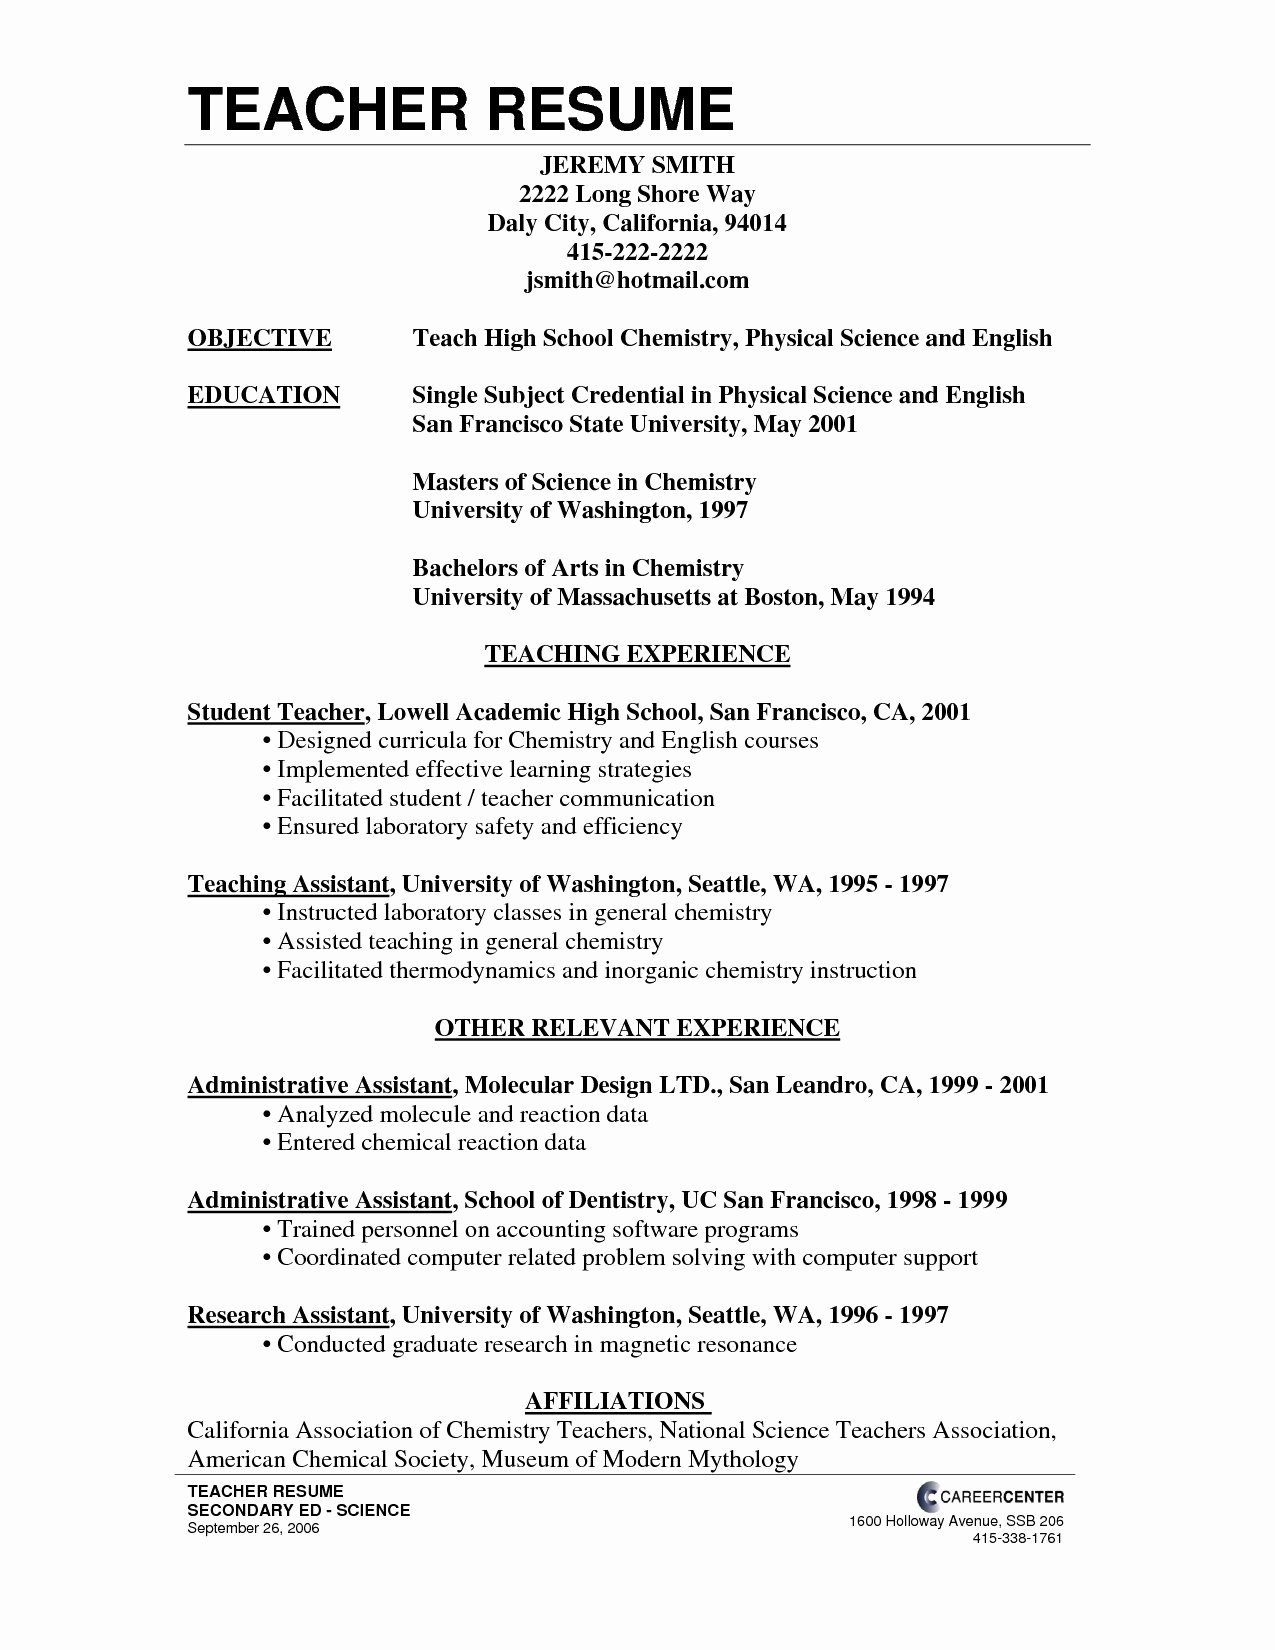 Dentist Appointment Letter Template - Resume Cover Letter Example New Free Cover Letter Templates Examples